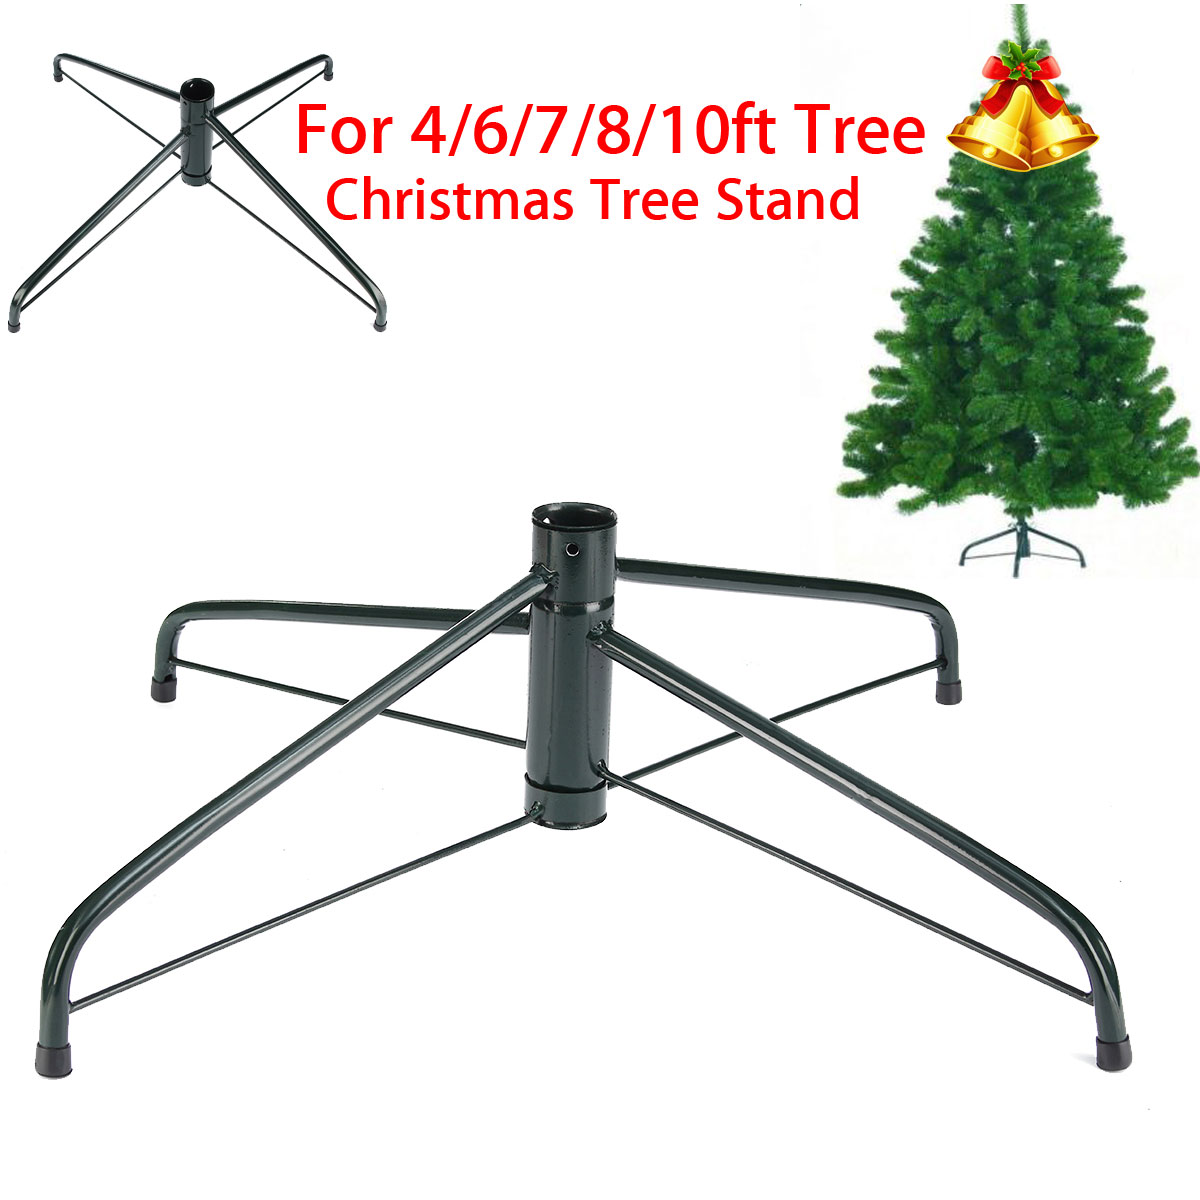 Artificial Christmas Tree Stand.Details About 4 6 7 8 10ft Christmas Tree Stand Green Metal Holder Base Cast Iron Decor Party